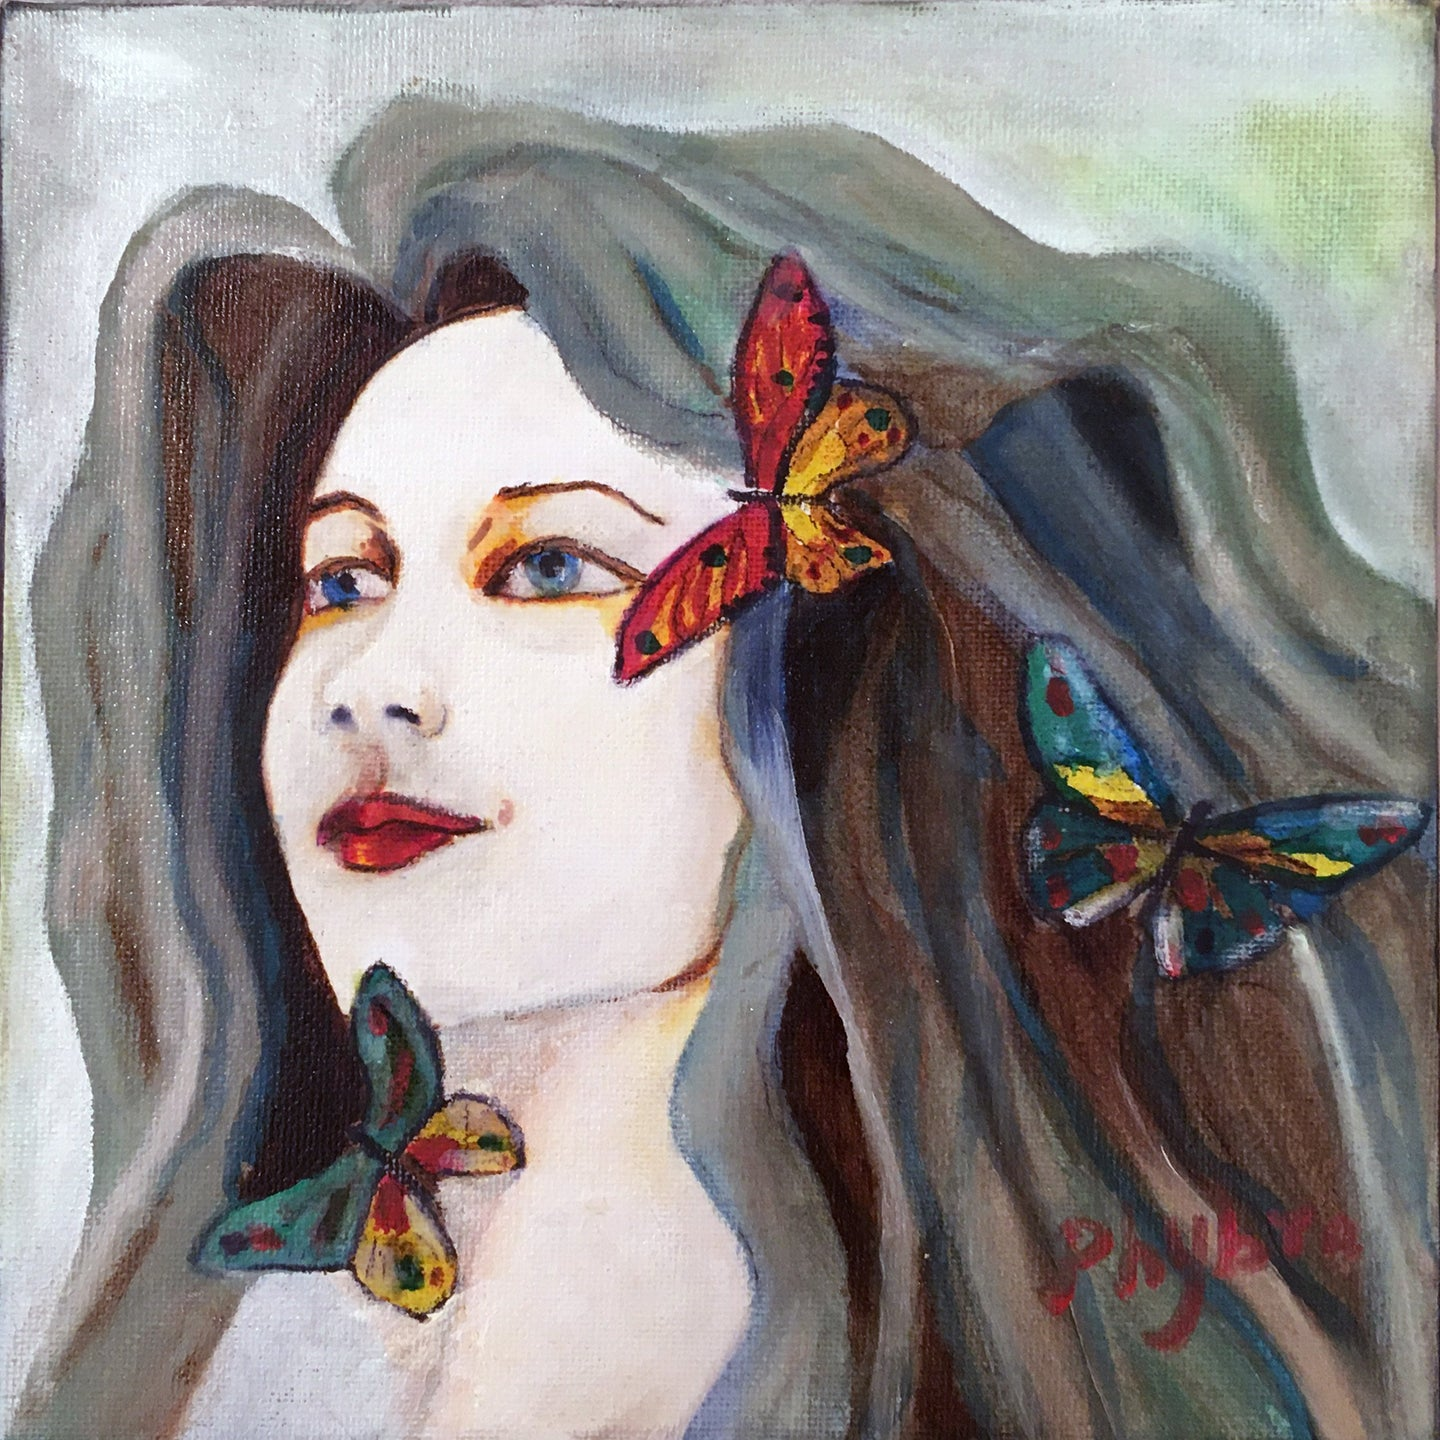 Peinture  de PHYBRA - Tendresse   (art contemporain, art figuratif, surréaliste )